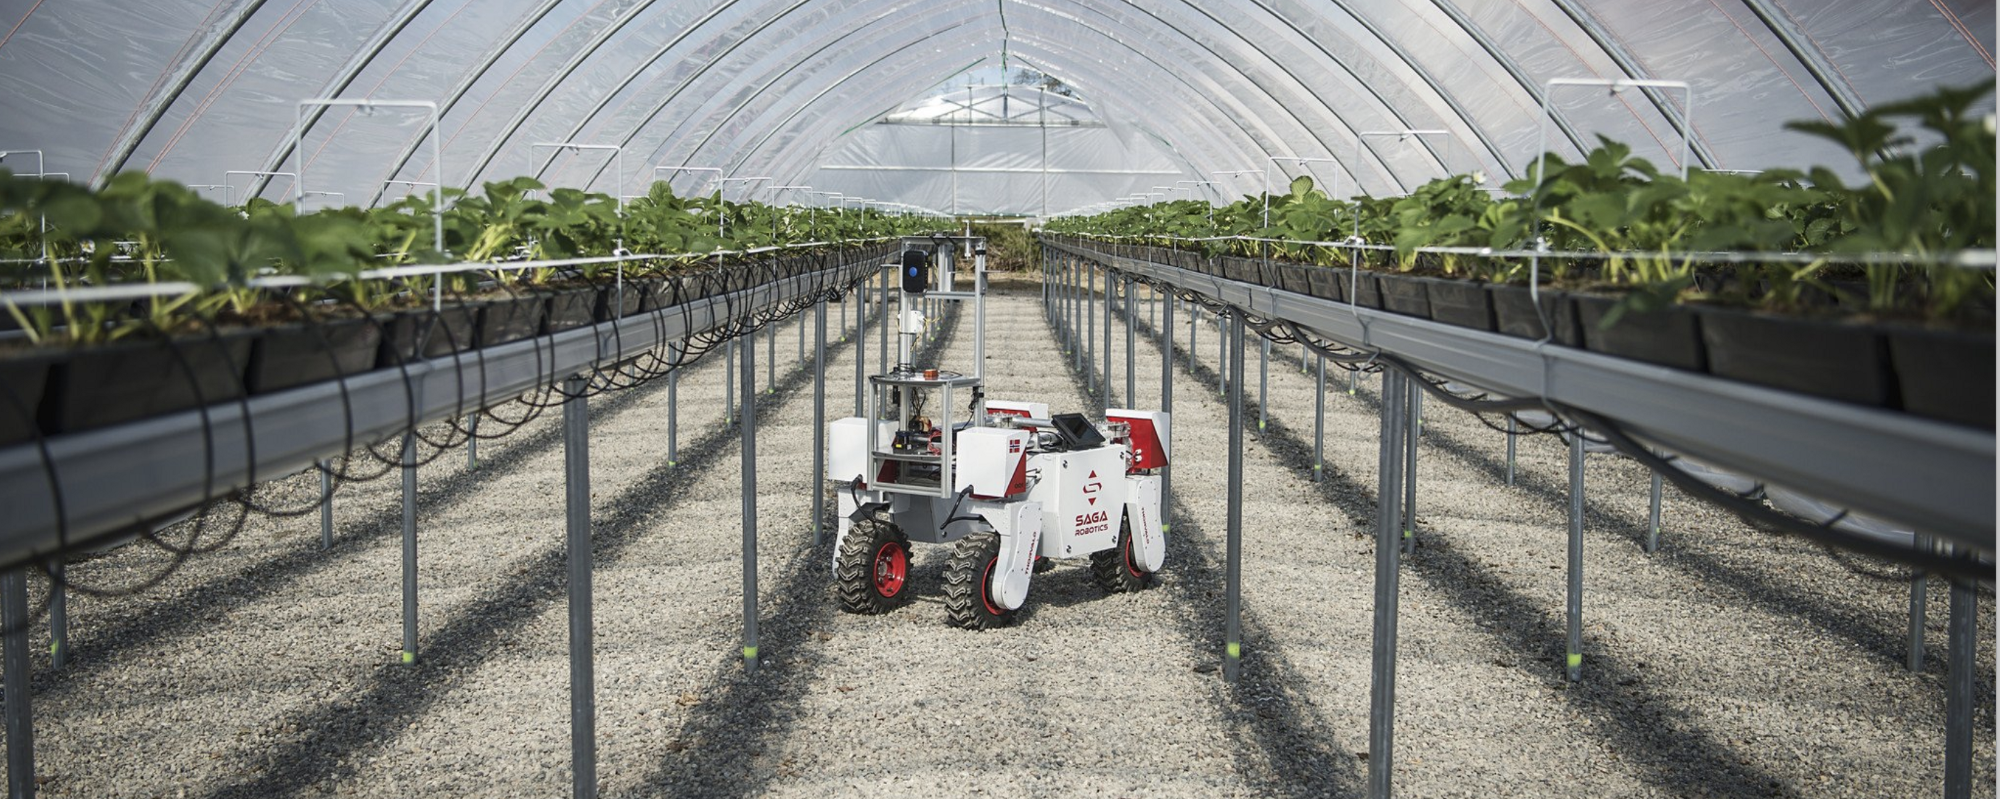 Can These Norwegian Startups Fix A Broken Food System Farmer Friendly Solar Based Electric Fencer For Rural Agriculture Thorvald The First Farming Robot From Saga Robotics One Of Many Companies That Are Currently Introducing New Products And Services To